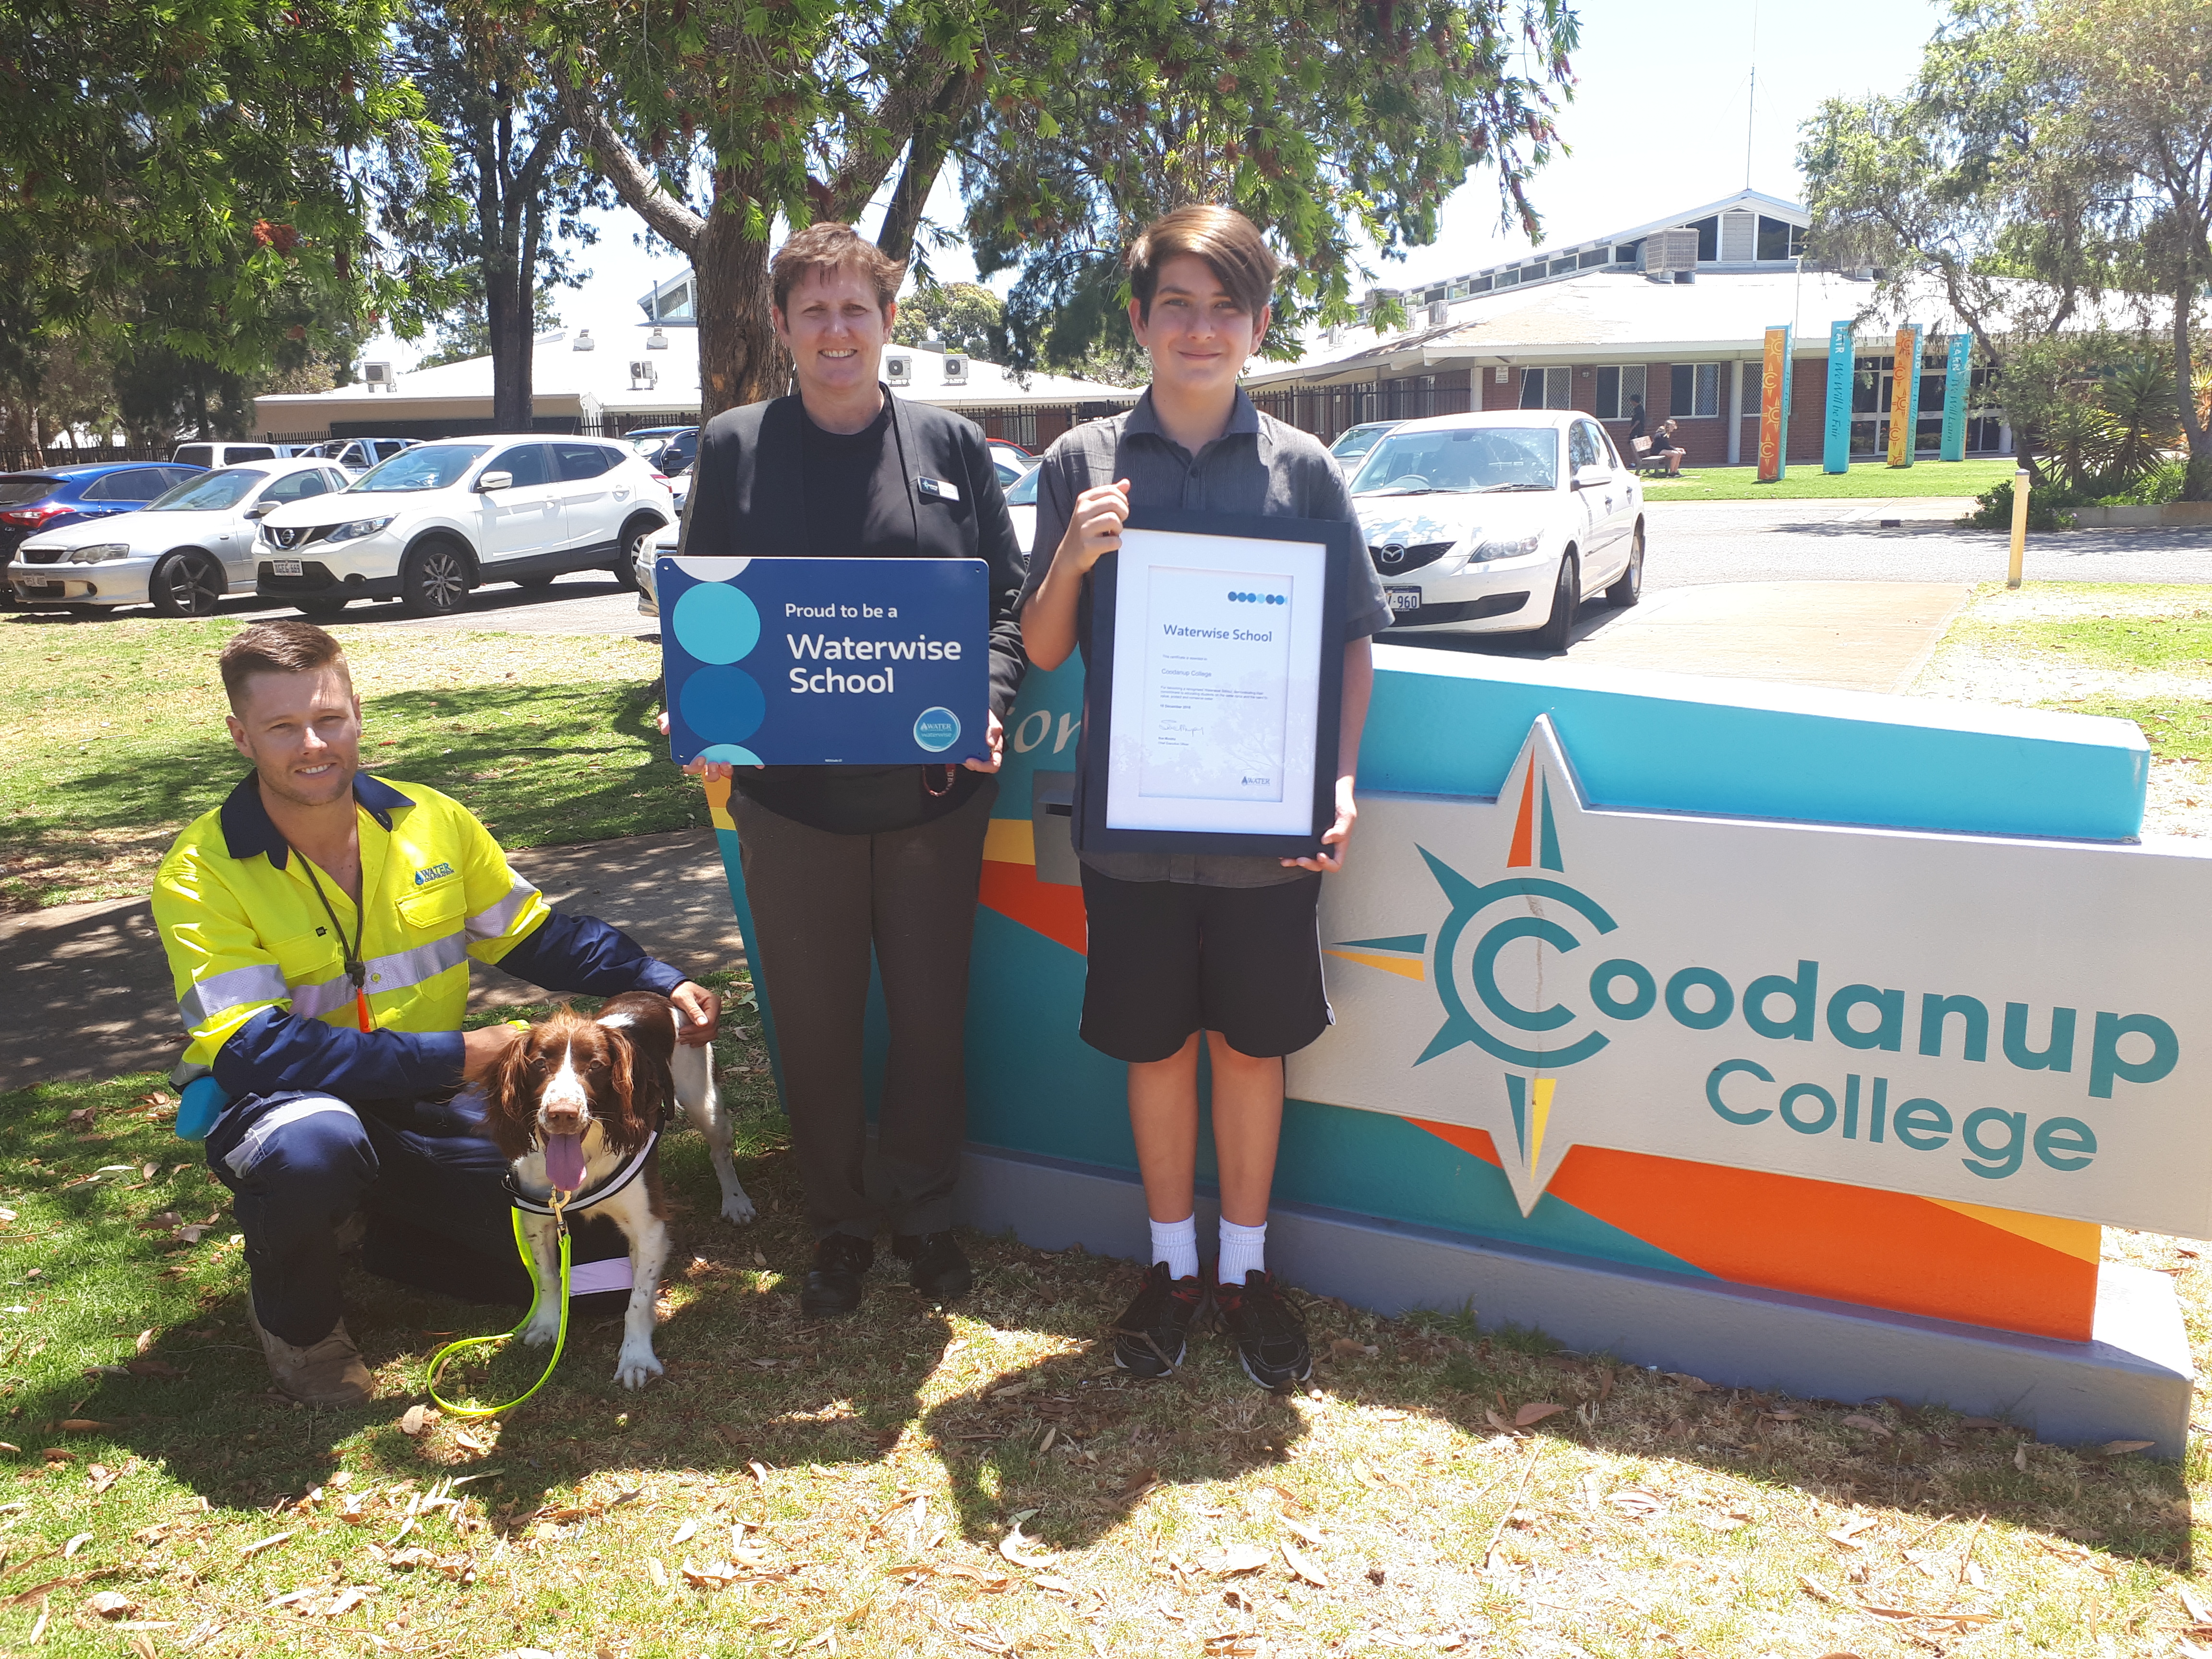 Coodanup College was recognised as a Waterwise School